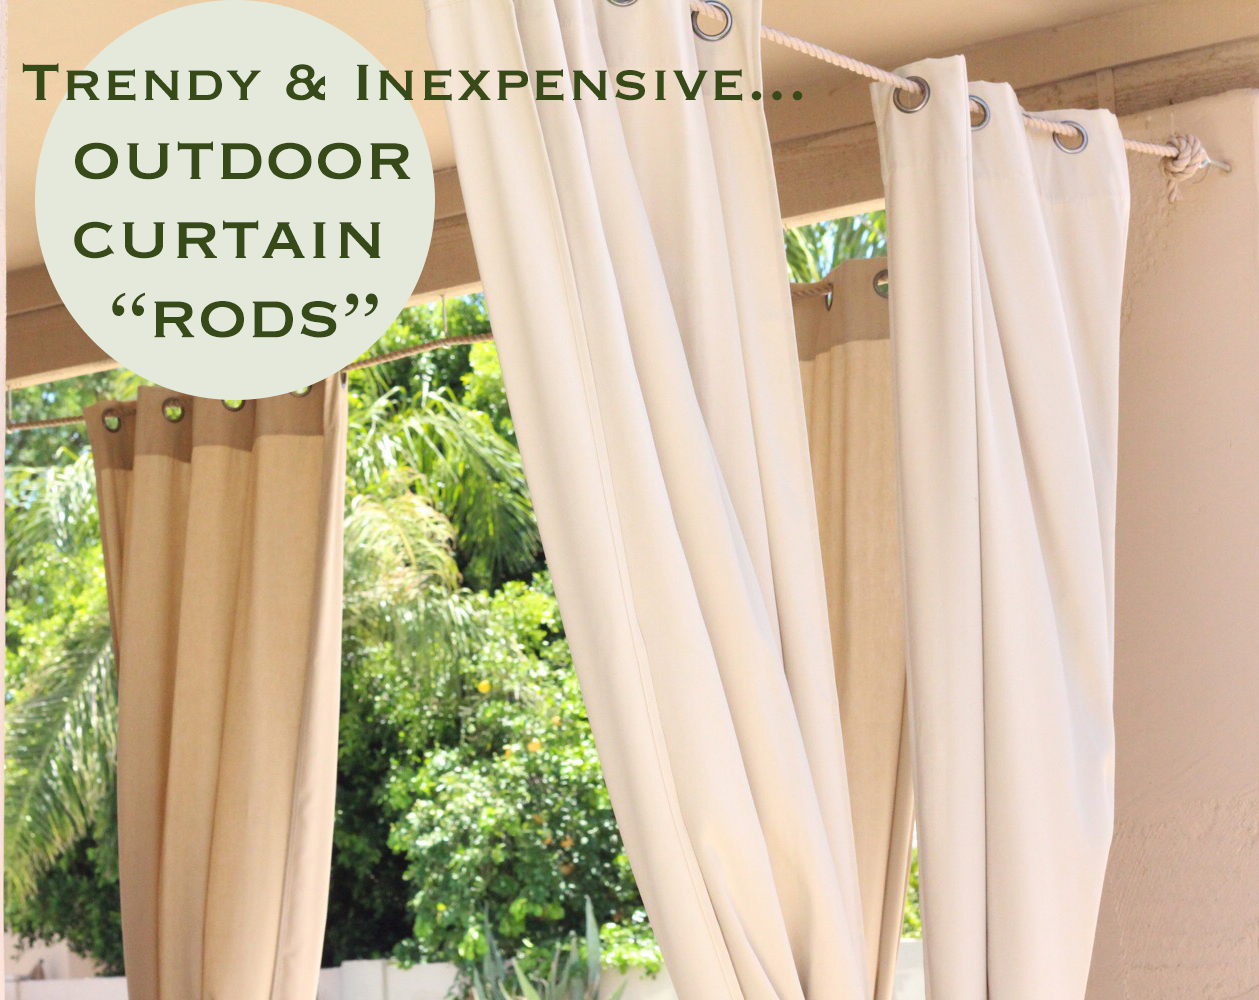 Outdoor curtain rod ideas - Outdoor Curtain Rod Pic